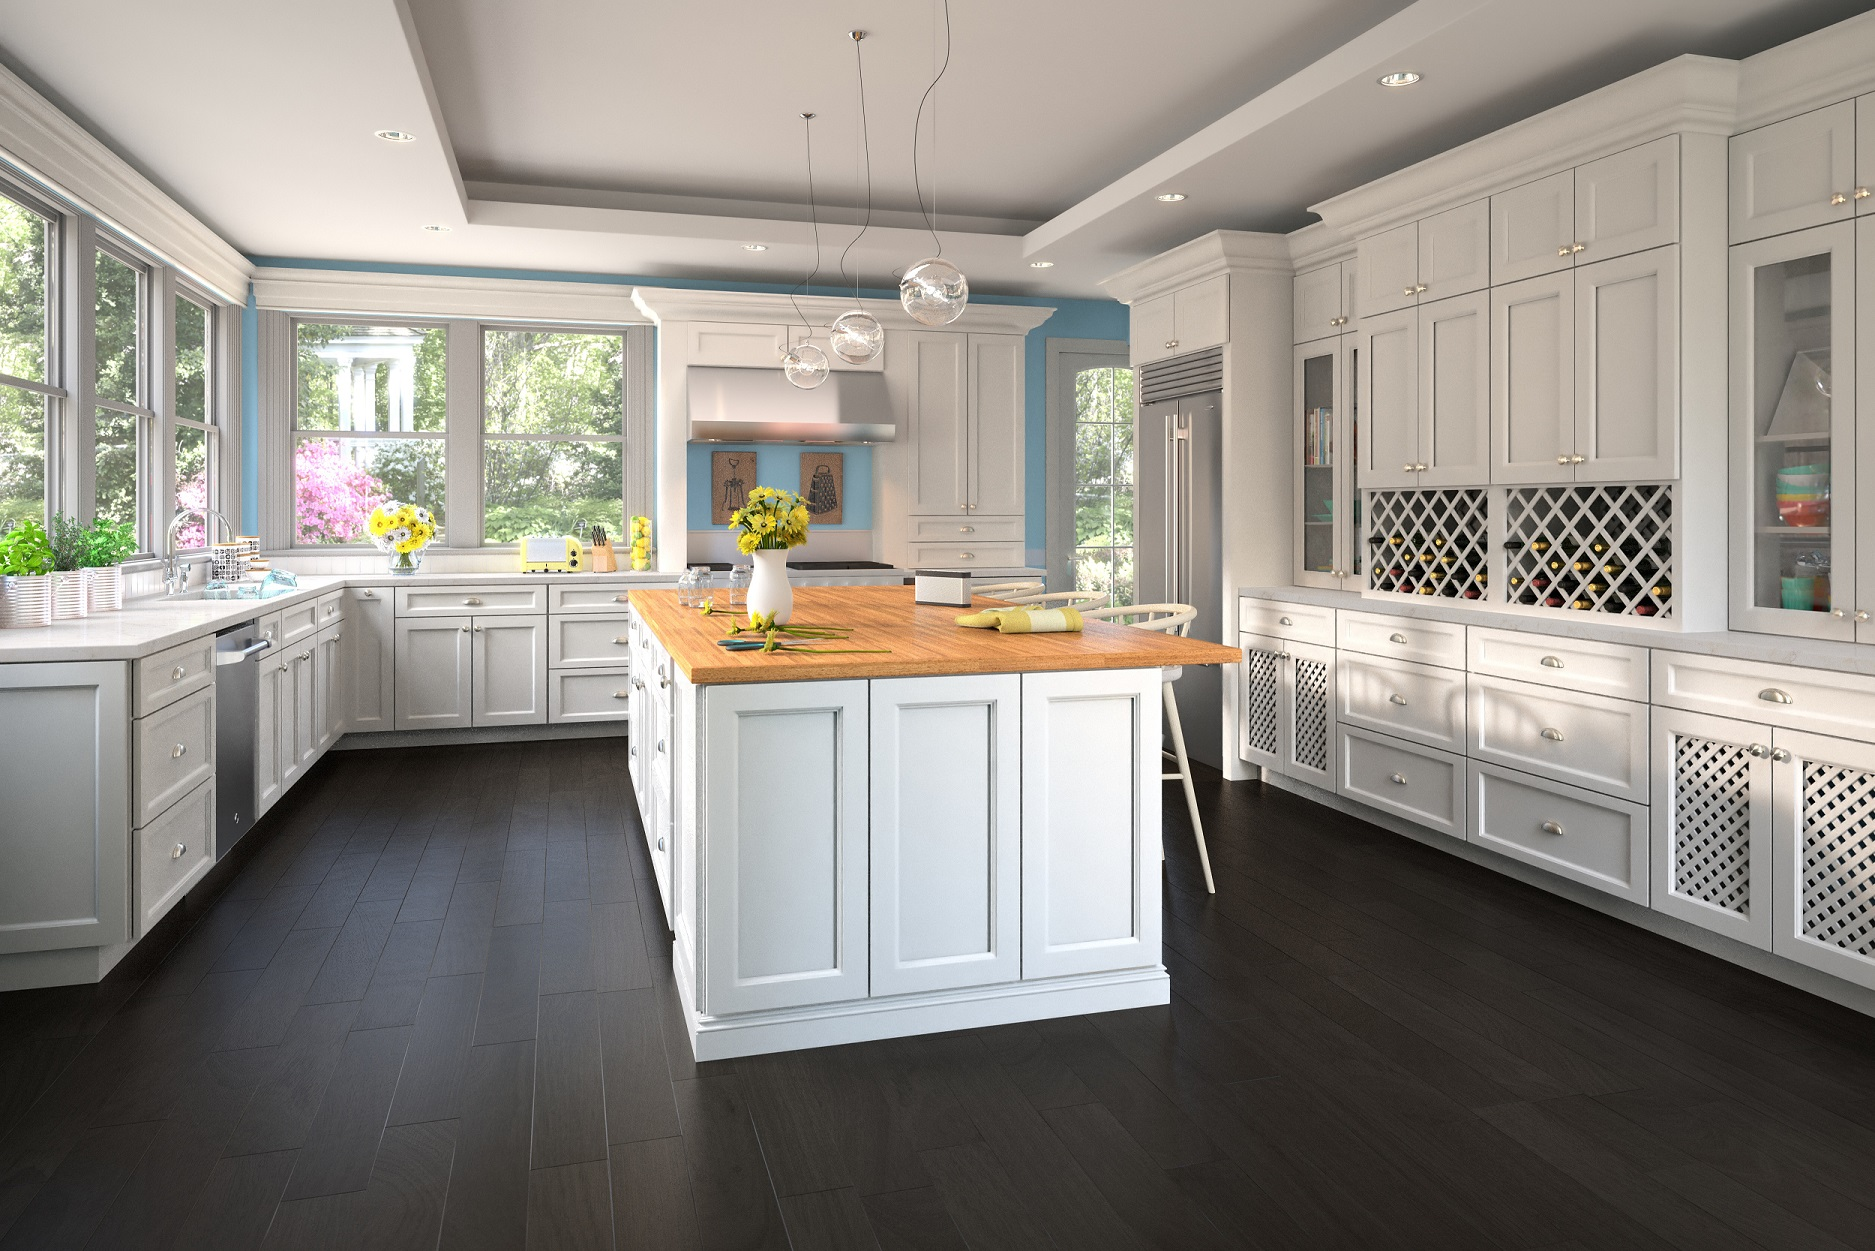 Providence White Pre-Assembled Kitchen Cabinets - The RTA Store